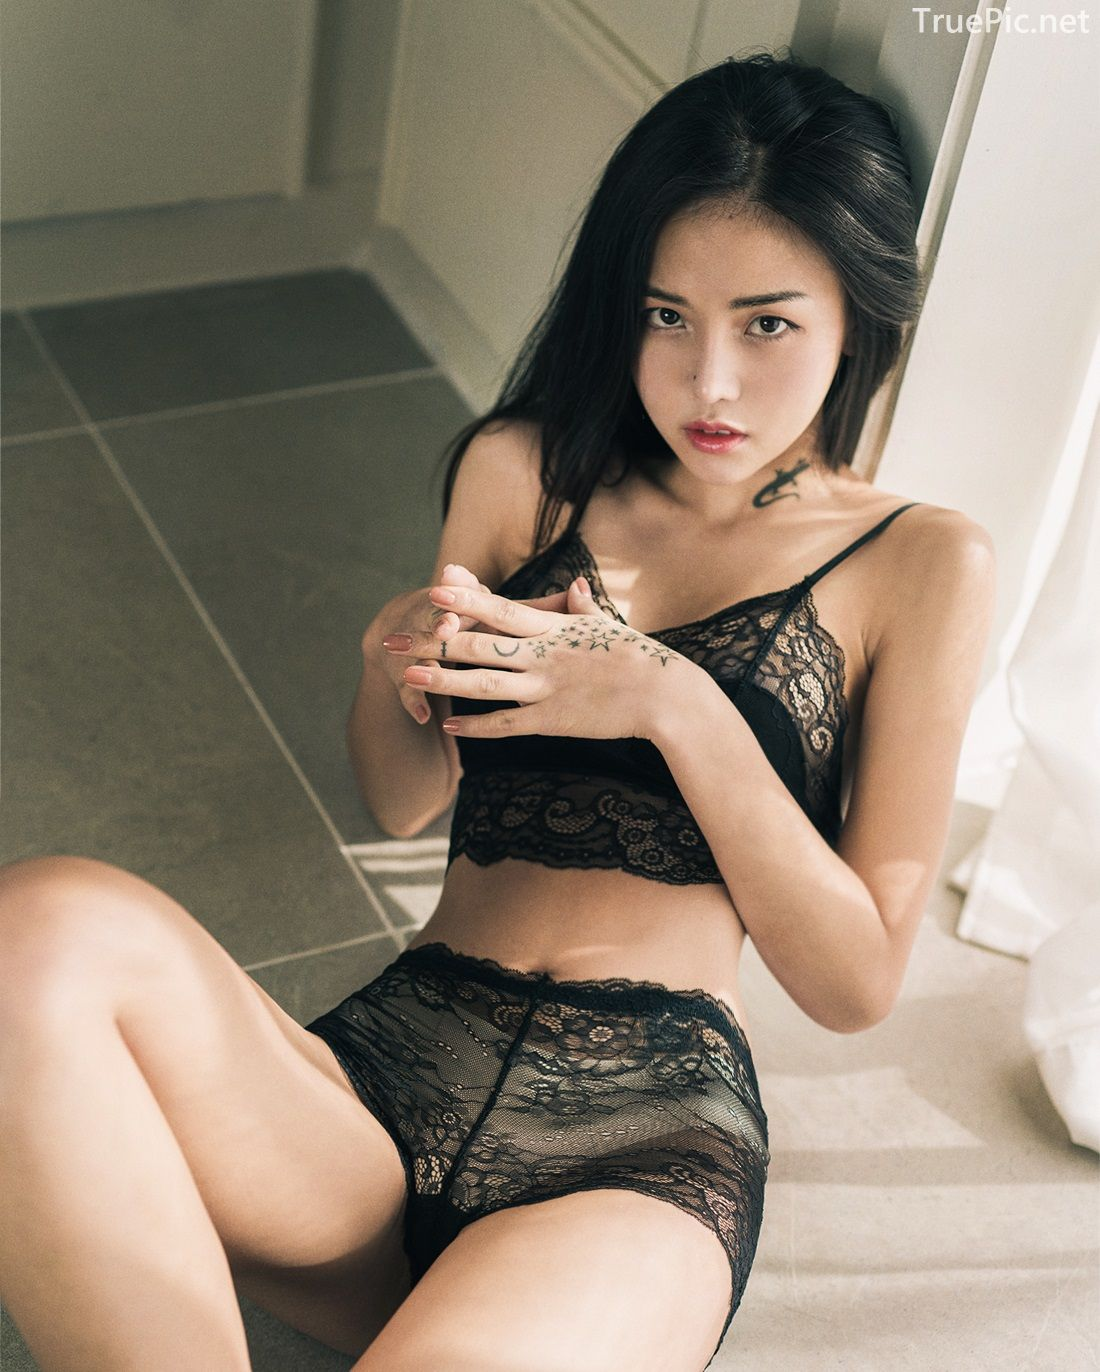 Baek-Ye-Jin-model-hot-images-Back-and-White-lingerie-set-TruePic.net- Picture-6